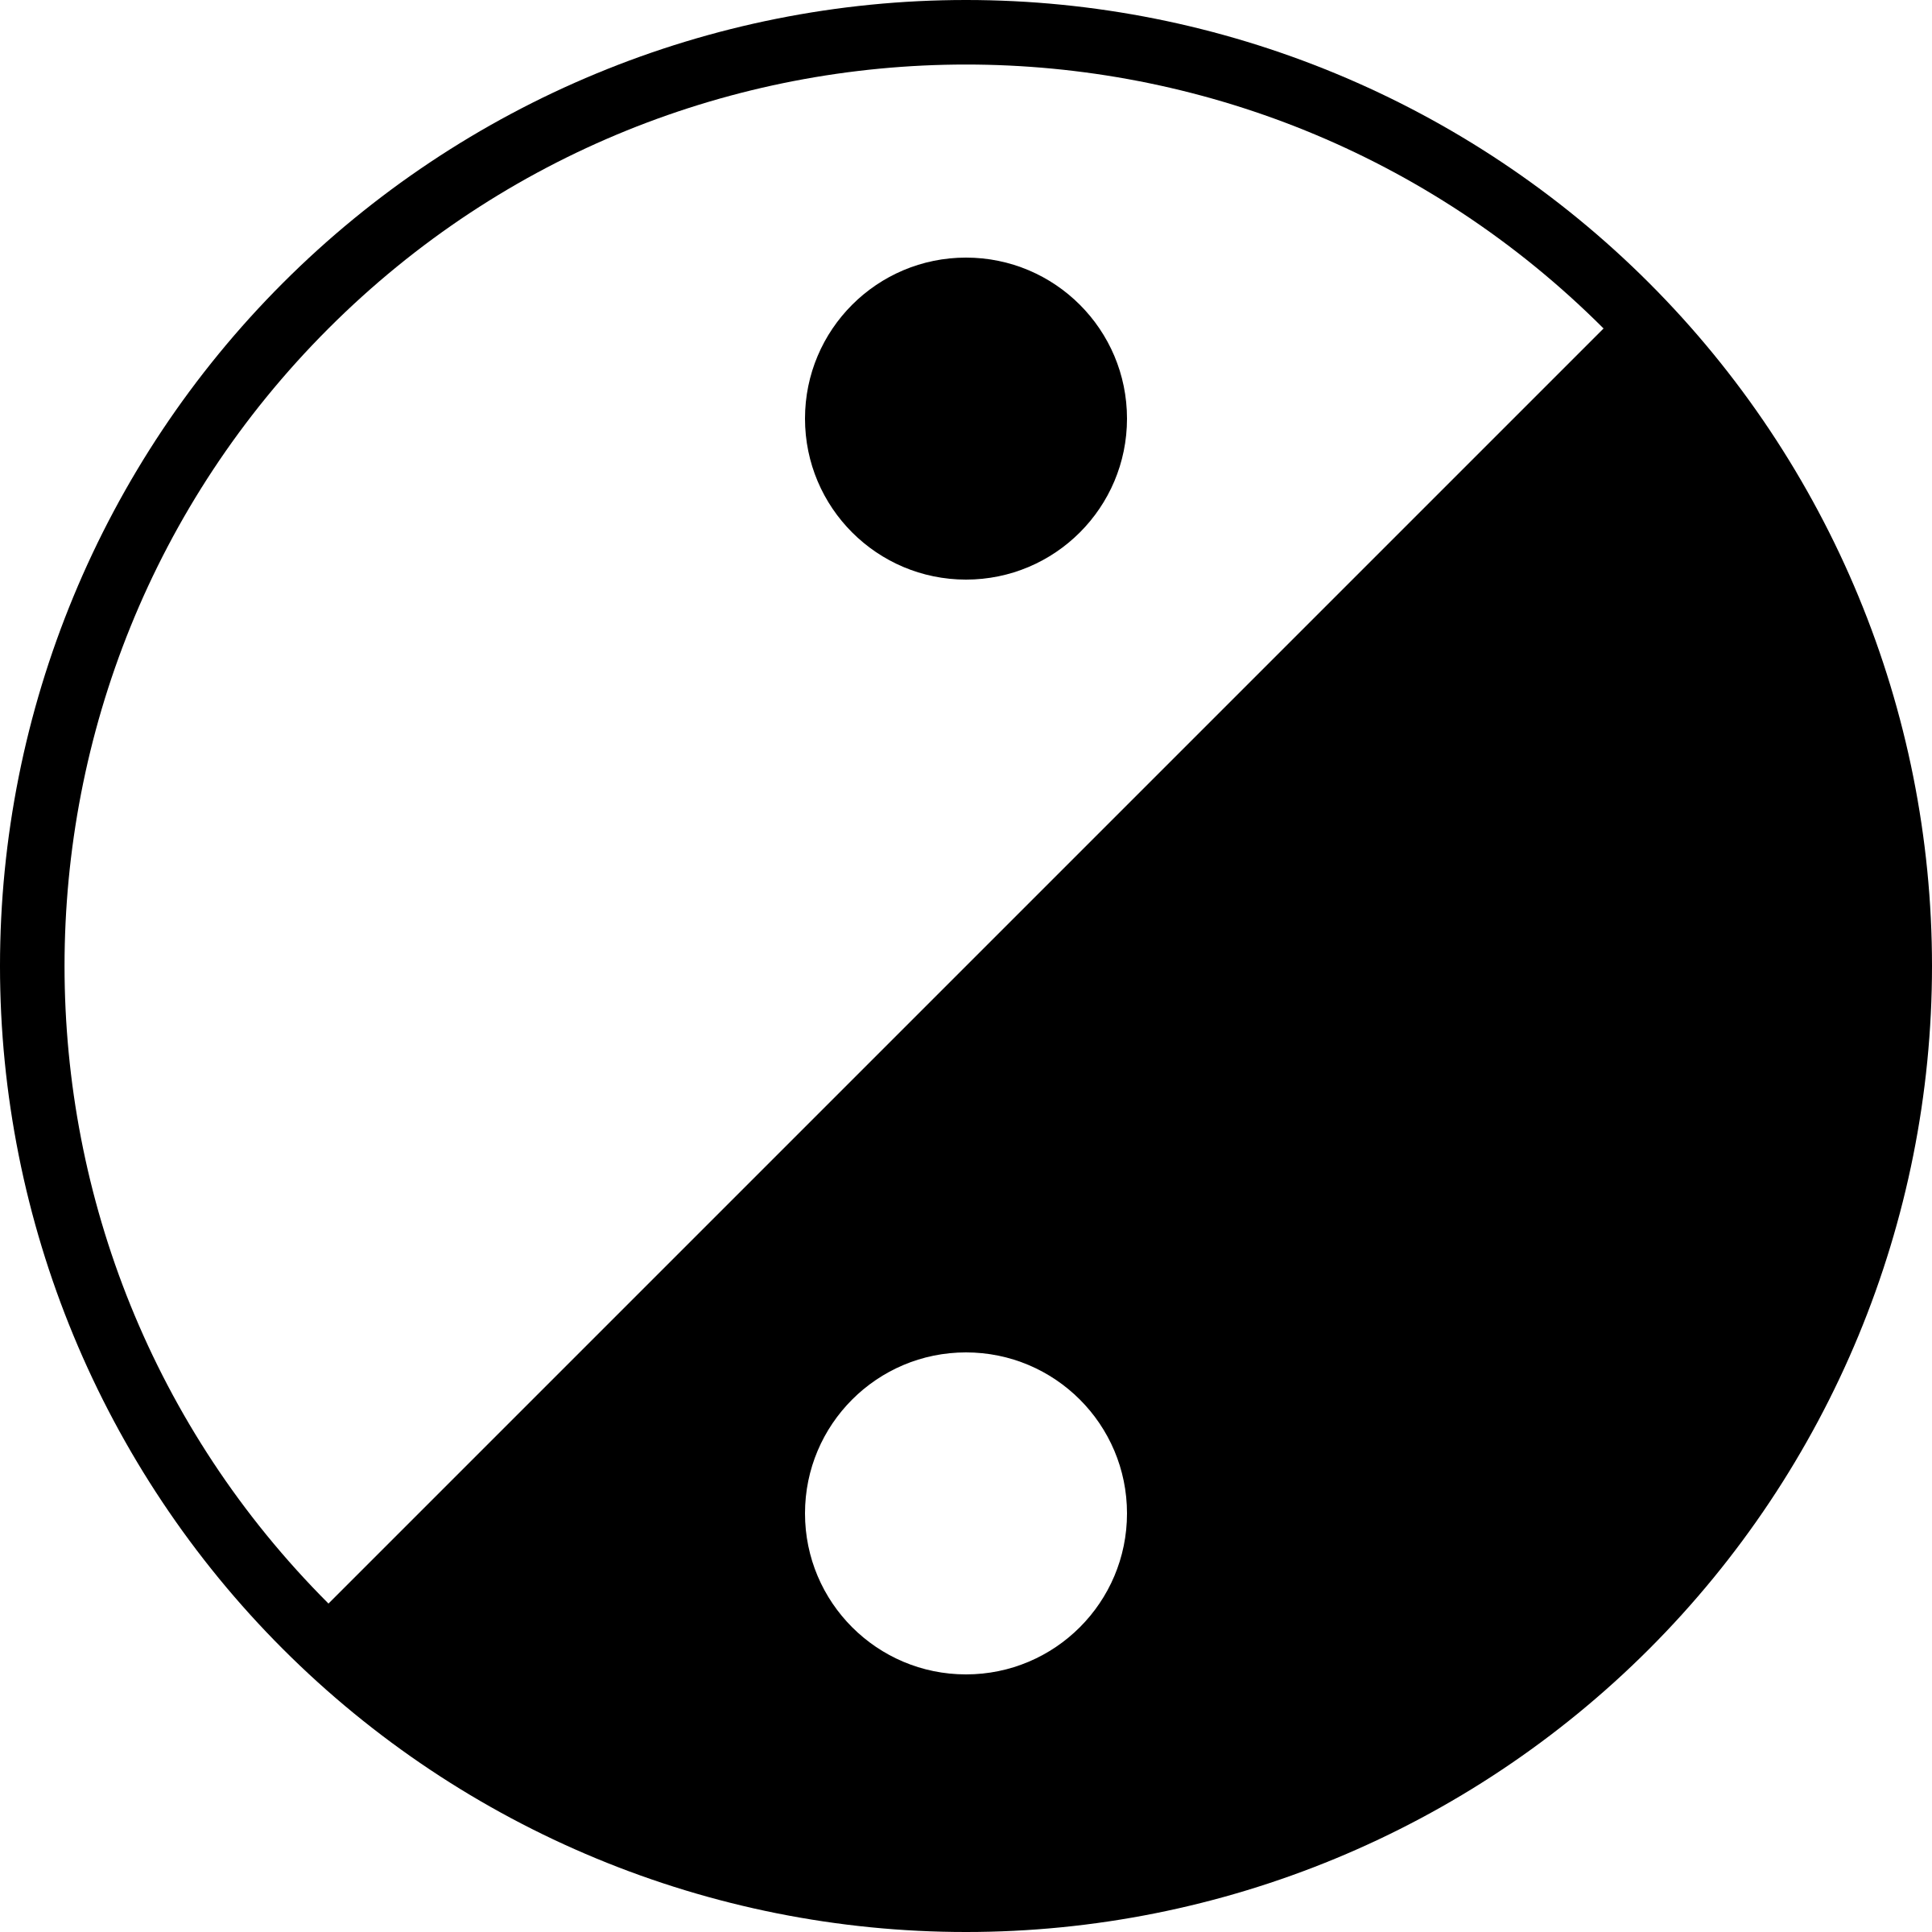 Simple Yin Yang Icon by qubodup